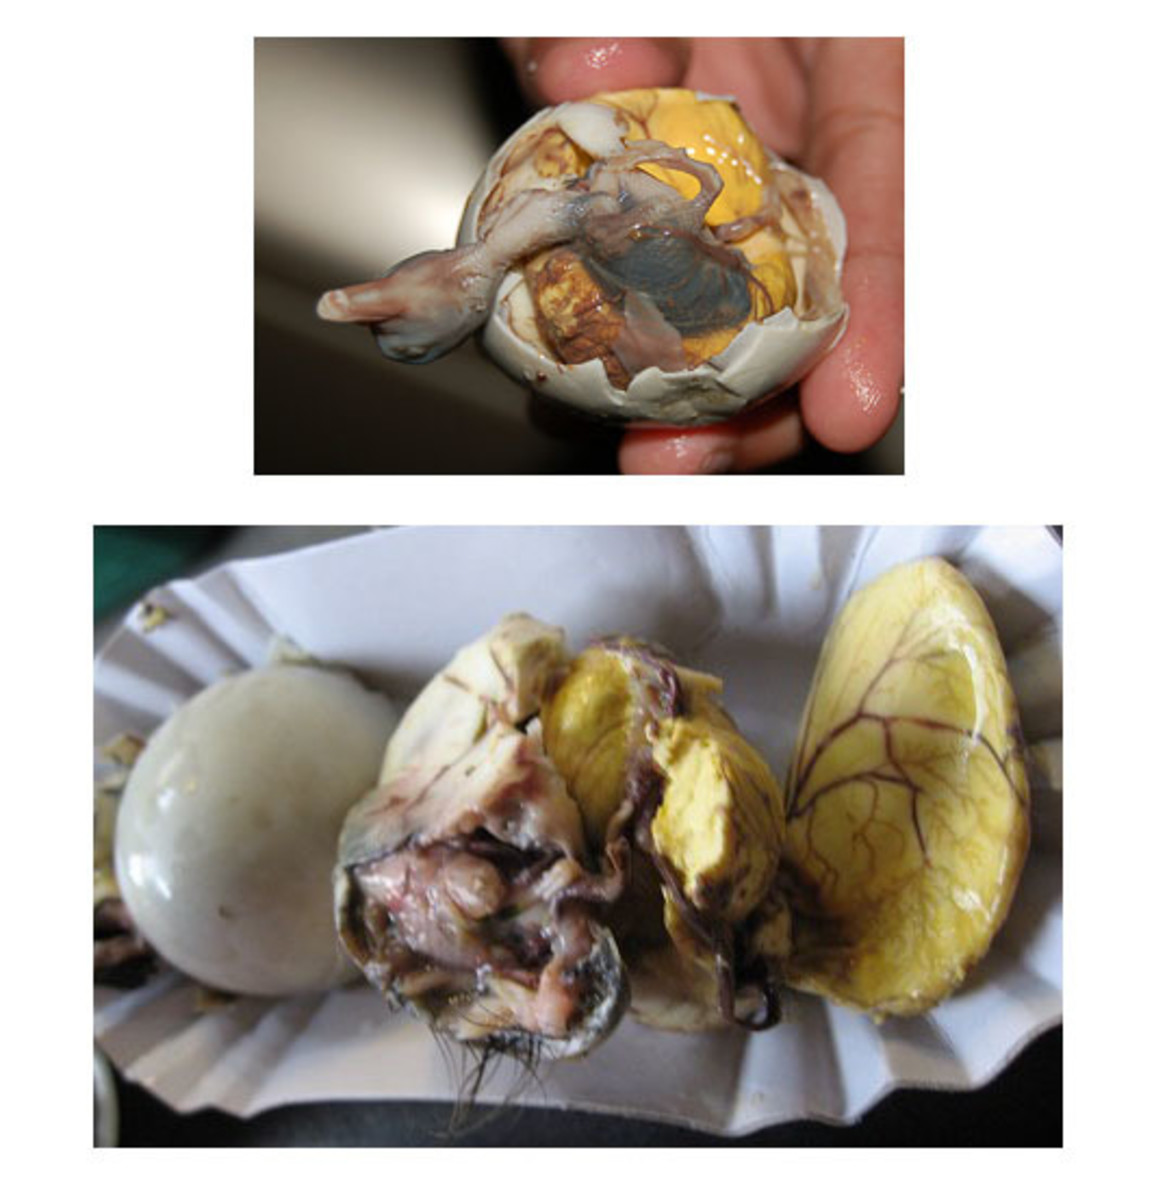 most-gross-foods-in-the-world